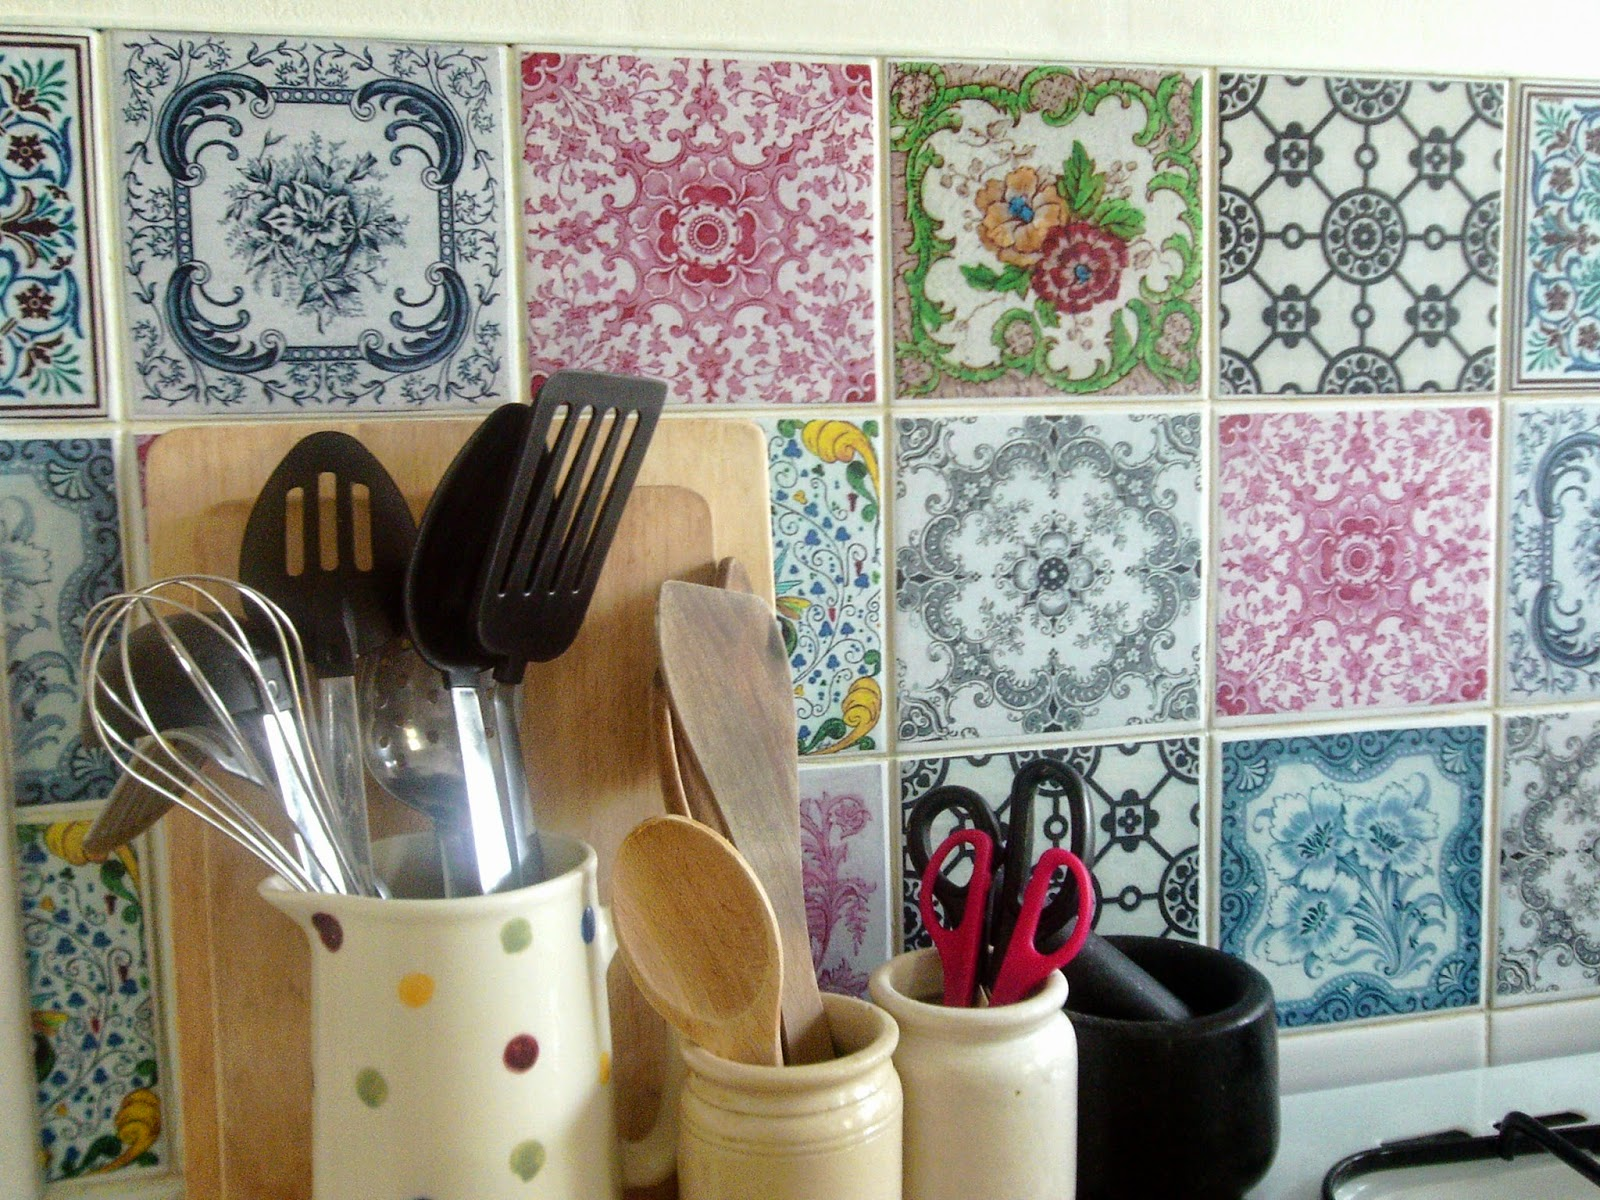 Kitchen Tiles Handmade jiggle ma wiggle & the thrifty blog: handmade victorian style